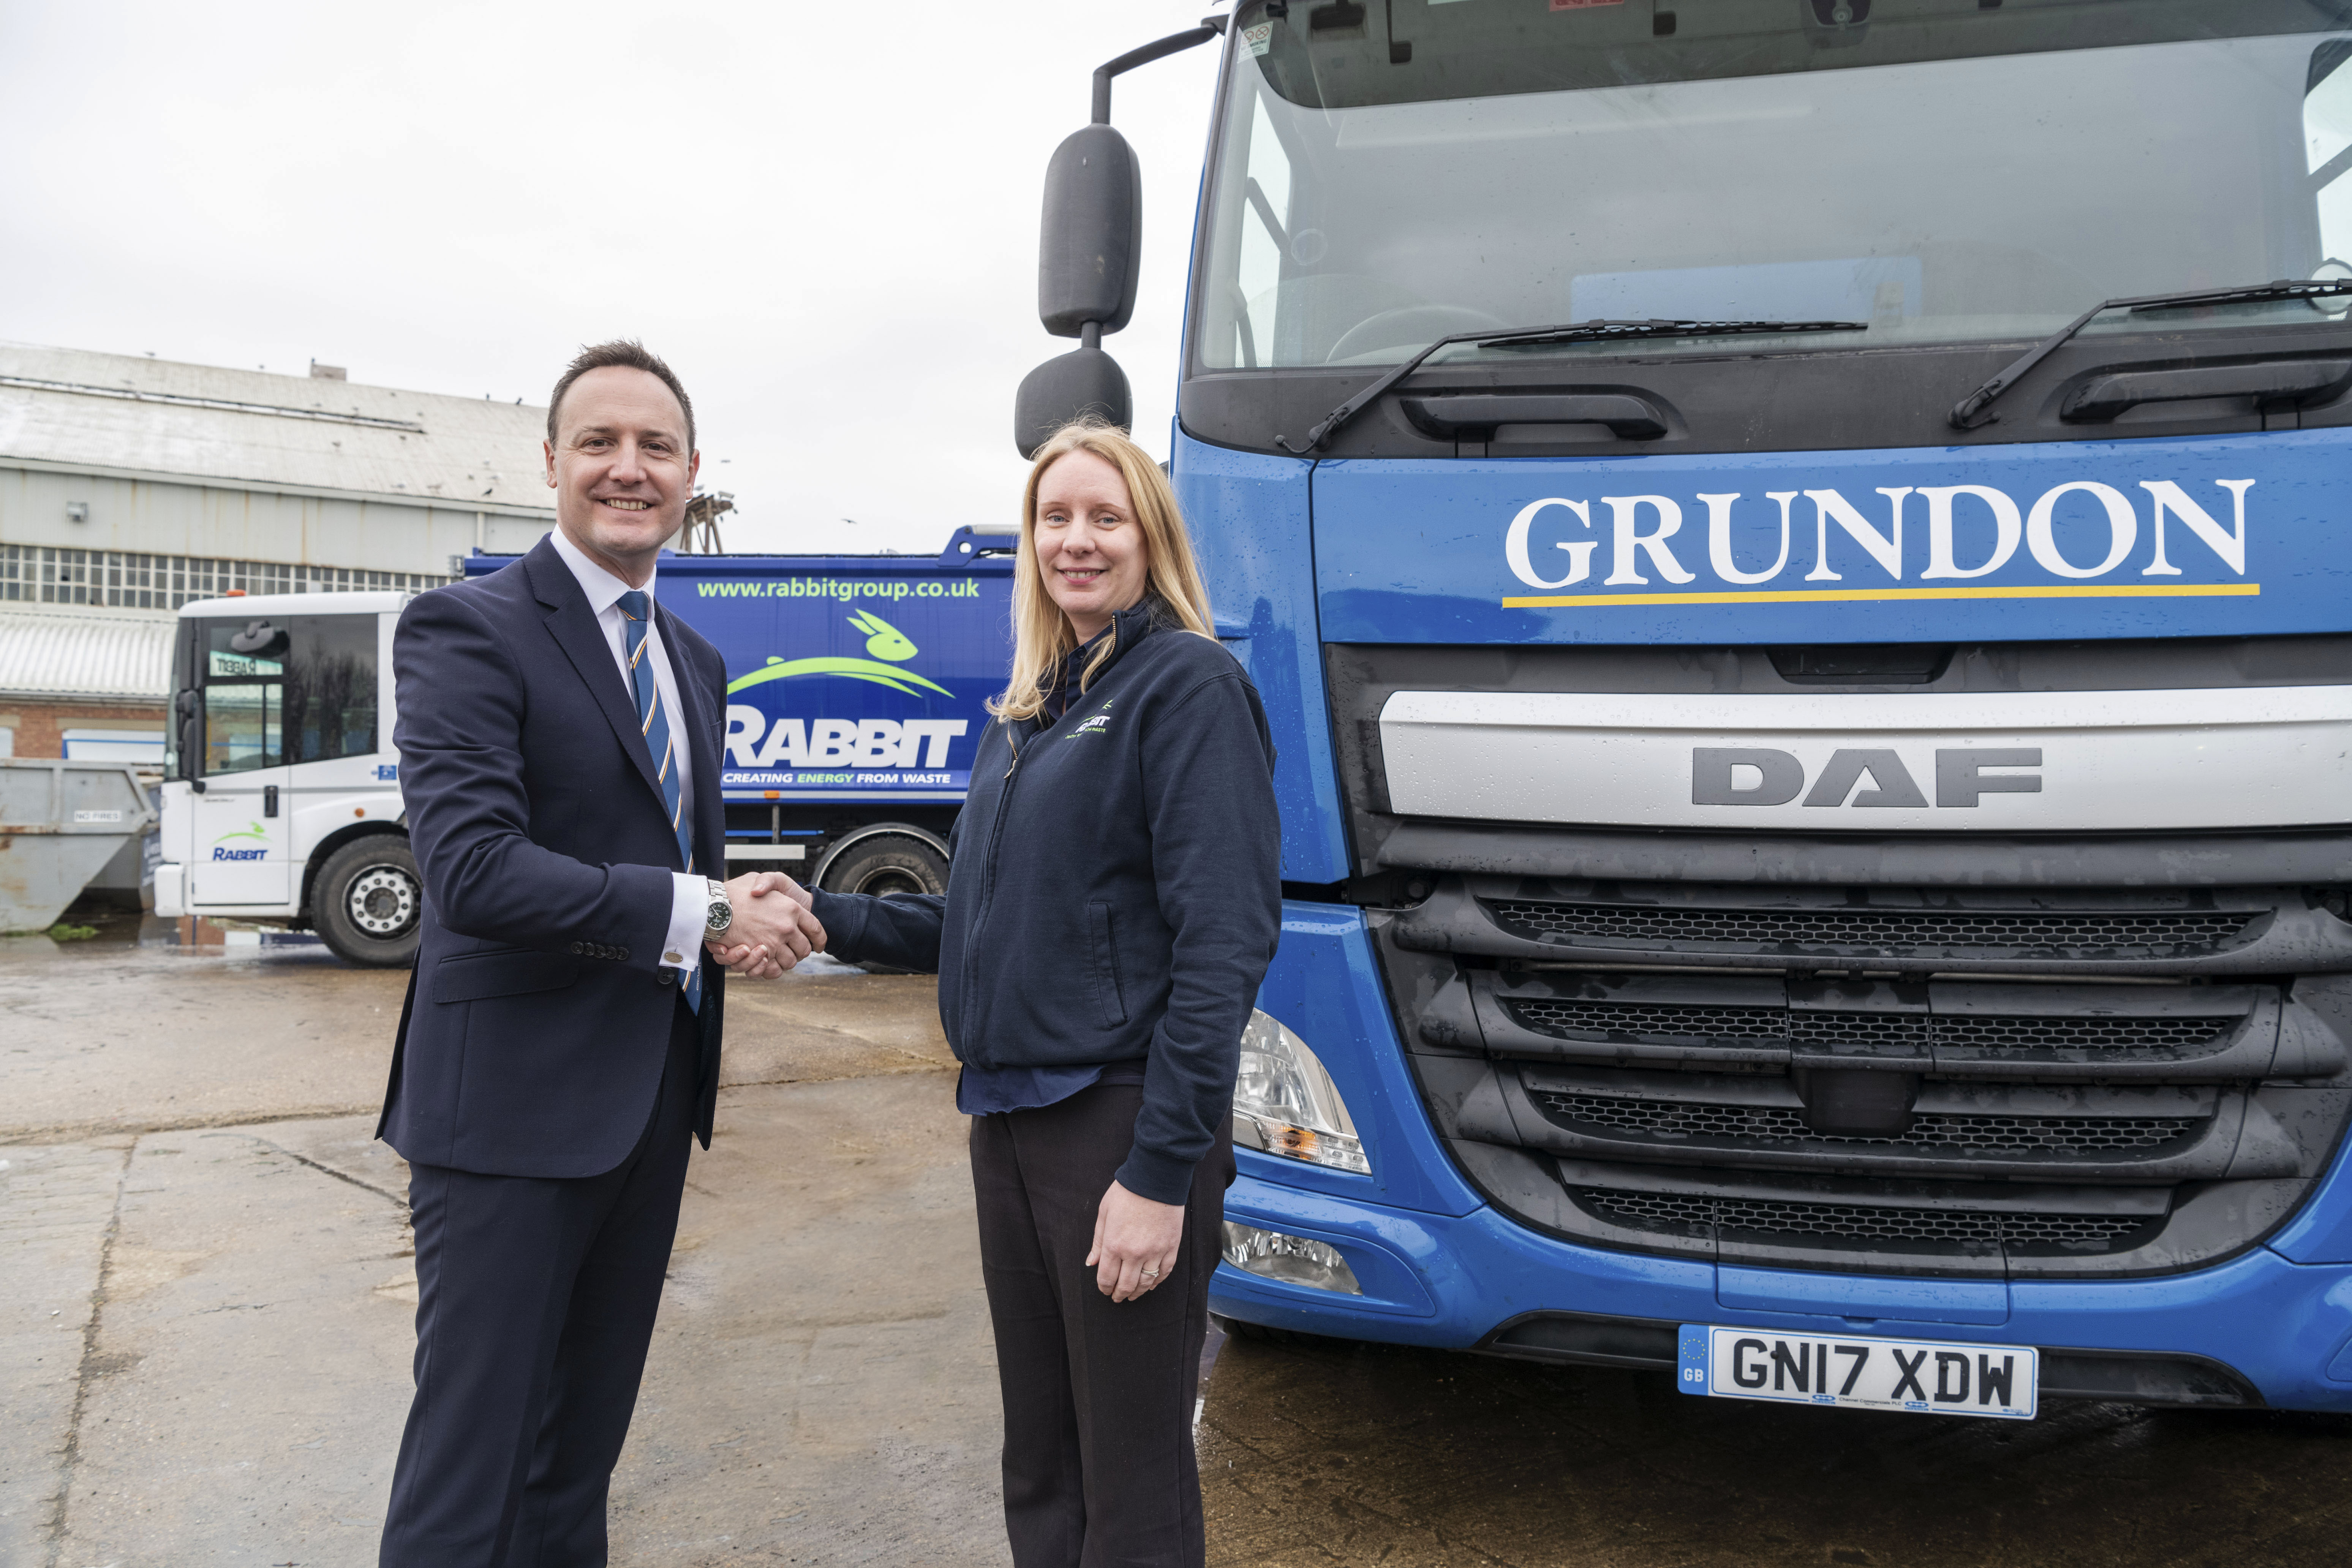 Bradley Smith, Sales & Marketing Director for Grundon pictured with Clare Gale, formerly with Rabbit, who joins the Grundon team as waste management sales.